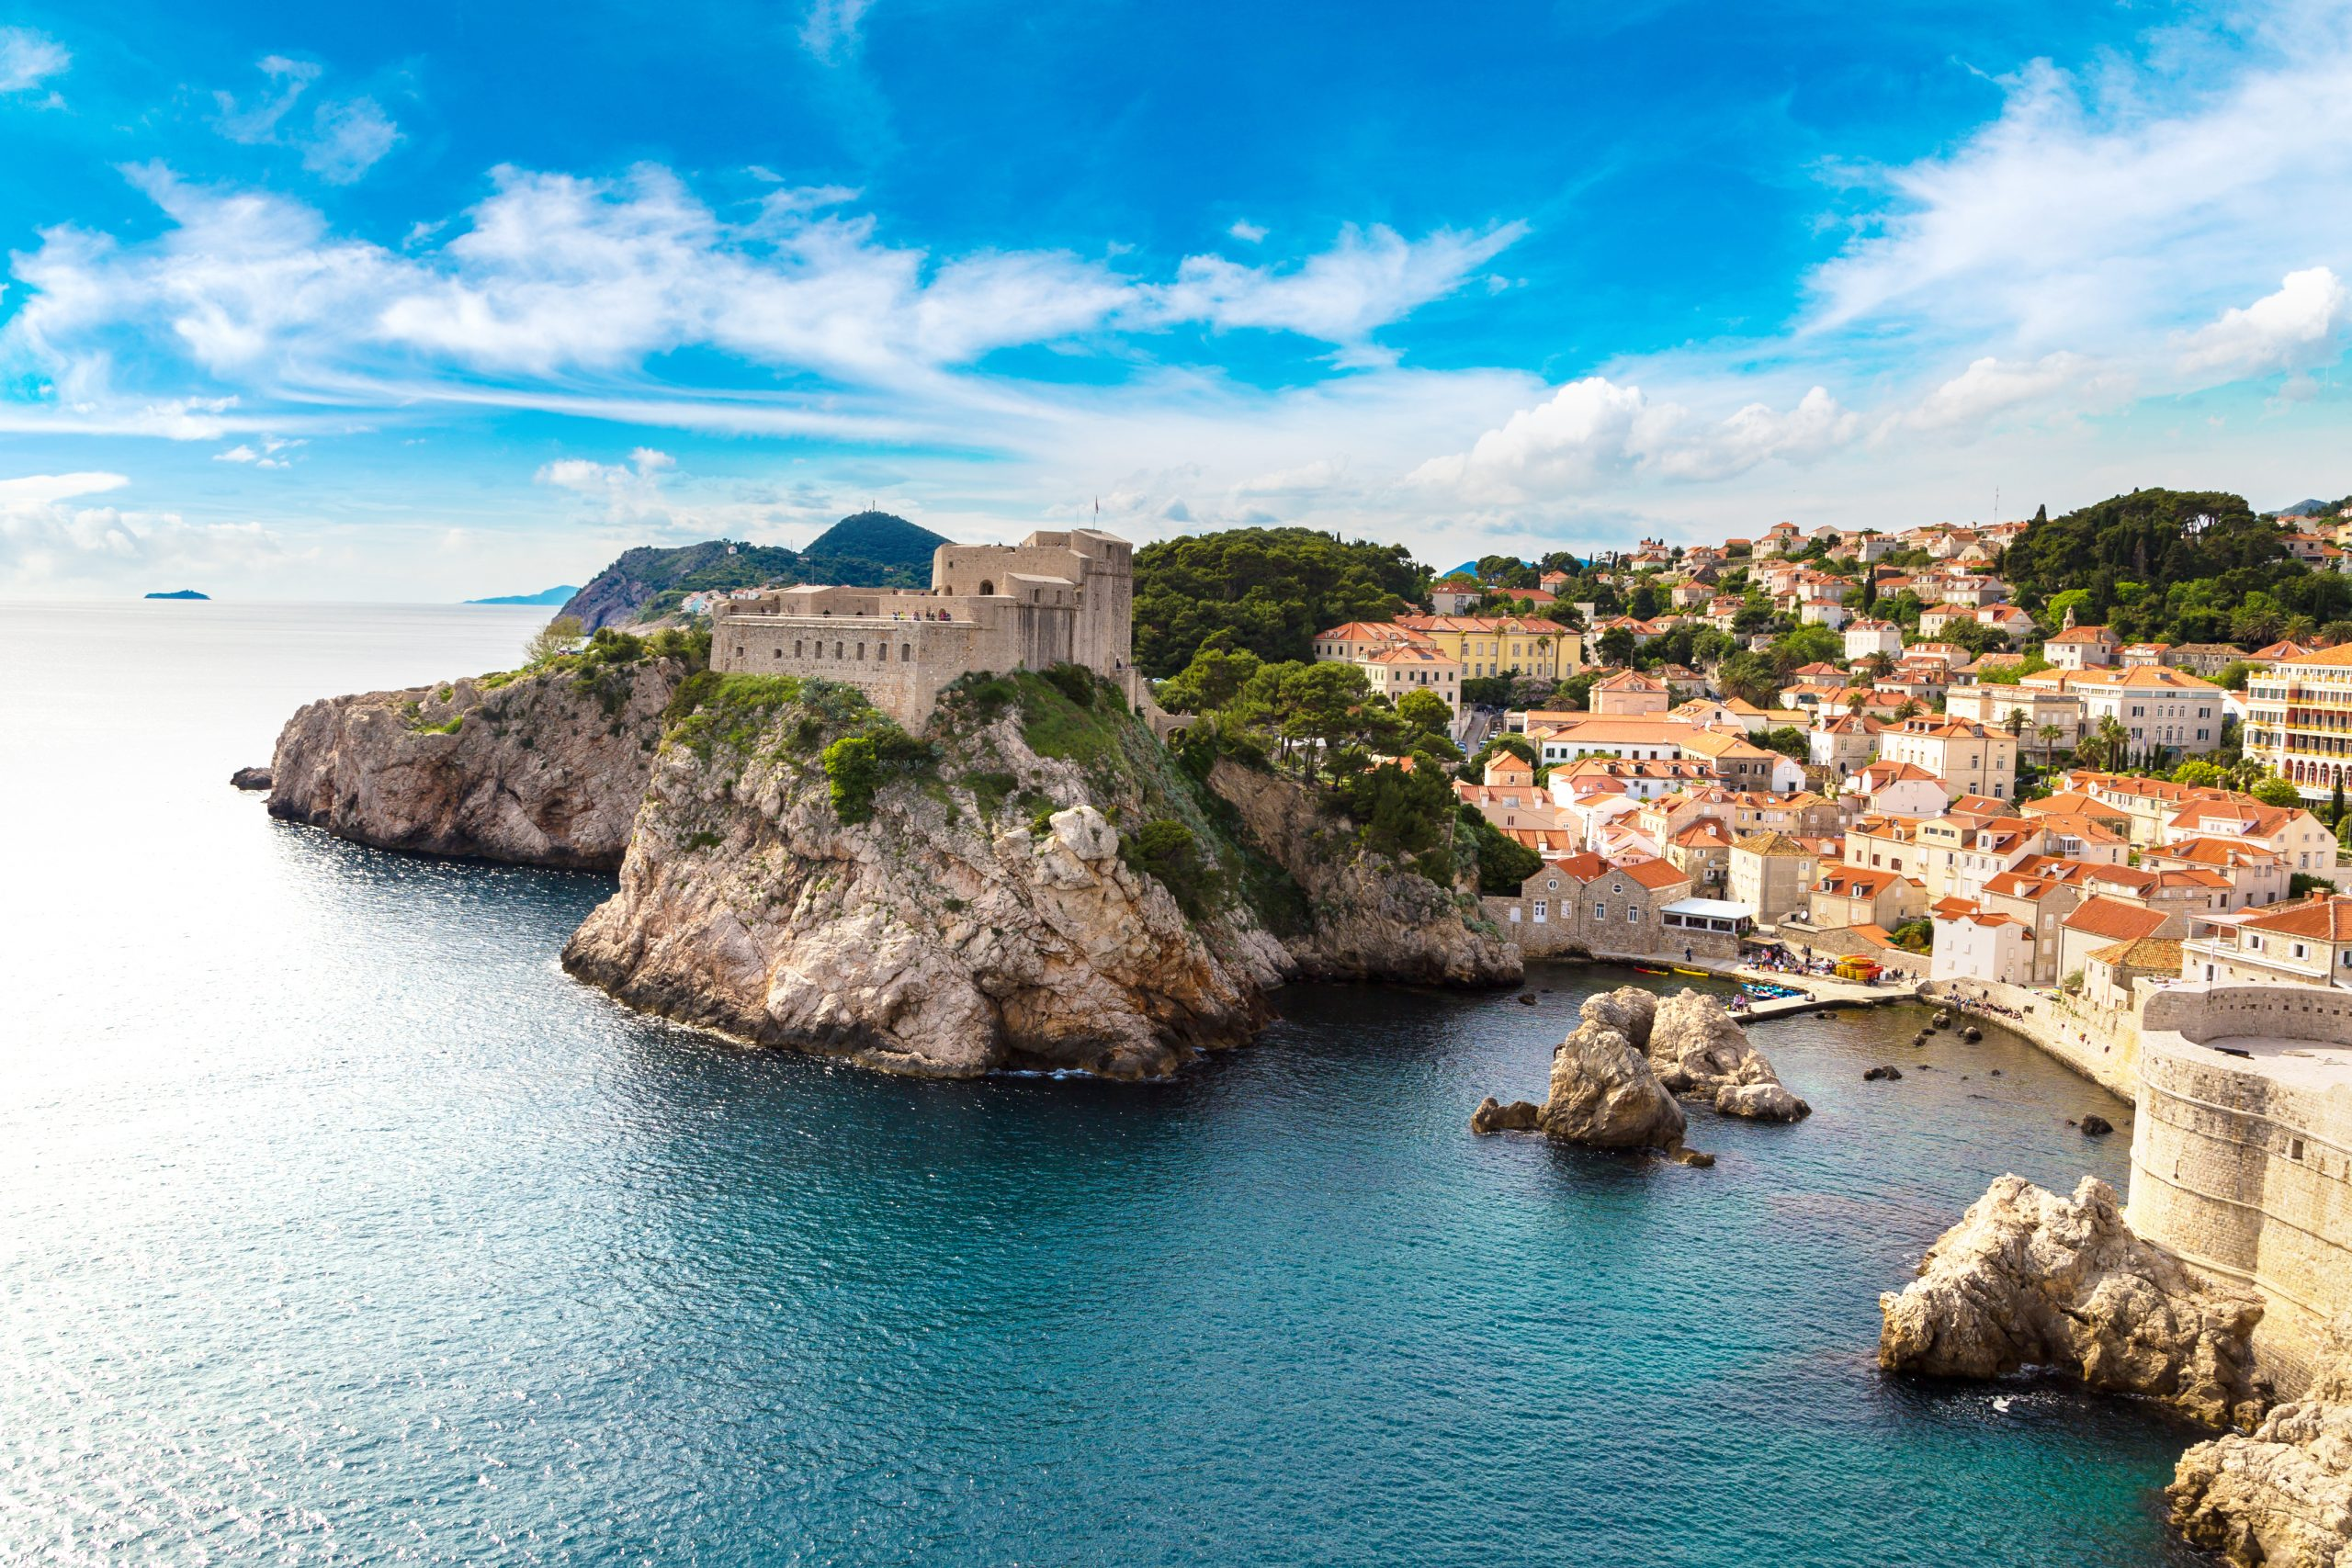 Visit The Old City Of Dubrovnik On Your Dubrovnik City Tour